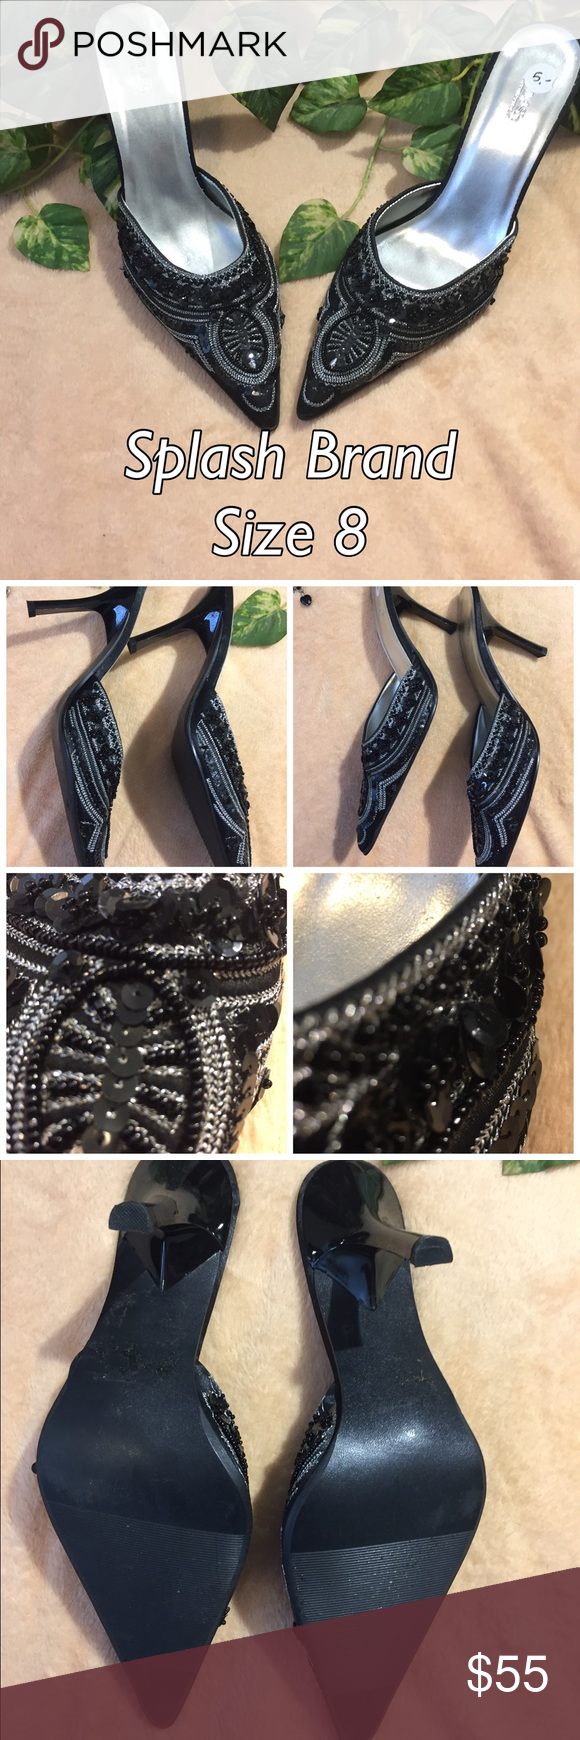 """✨ Splash Brand Embroidered Heels These are s beautiful pair of shoes! Made by the """"Splash"""" brand, these size 8 beauties are black with intricate black and silver detail and beading through out. The shoes are in excellent condition and ship immediatly!  📦 Splash Shoes Heels"""